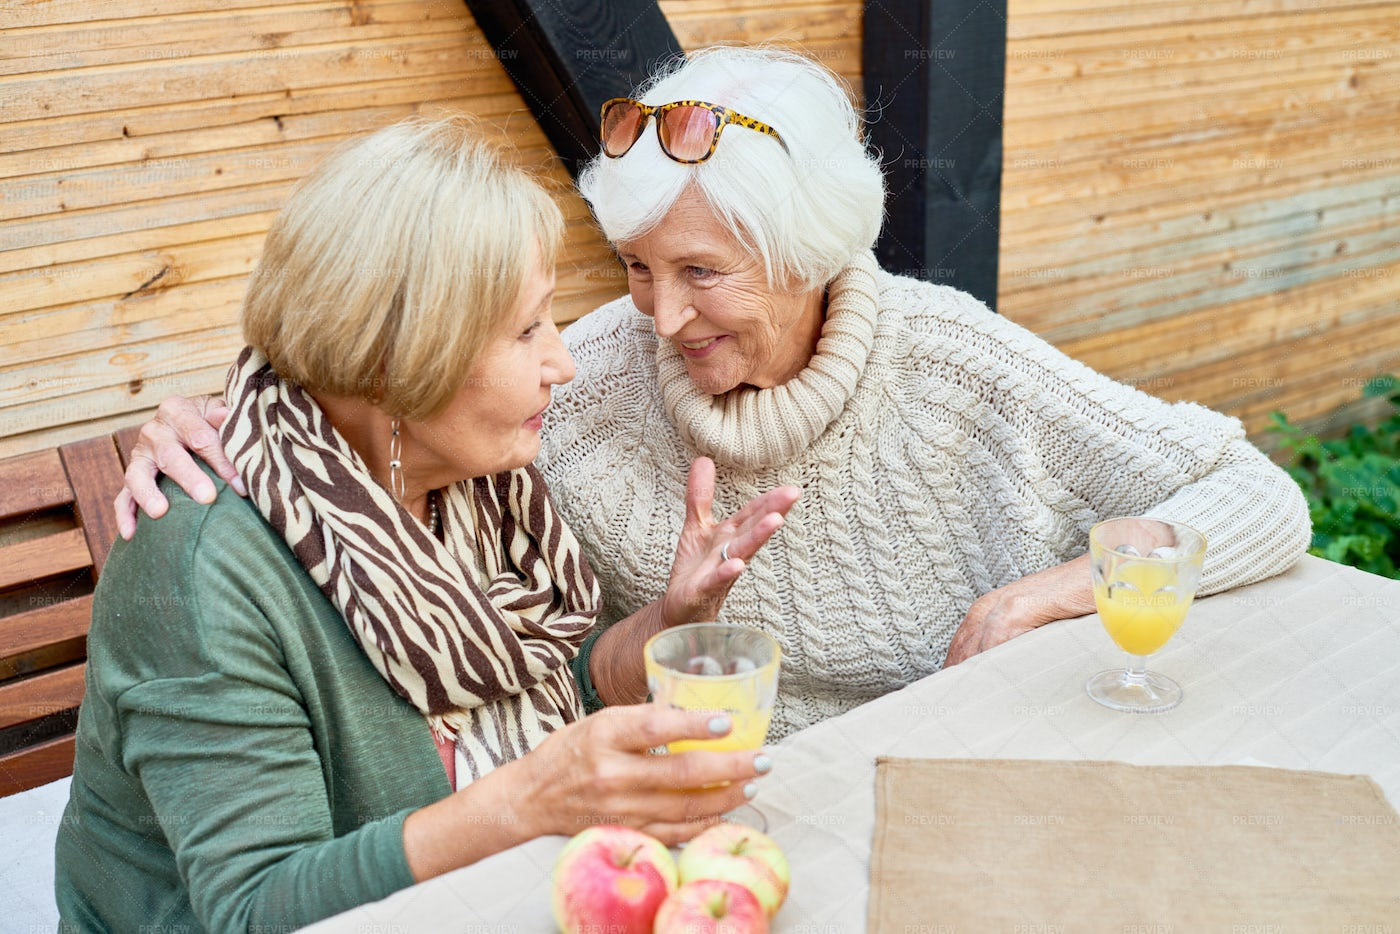 Senior Girlfriends In Cafe Together: Stock Photos